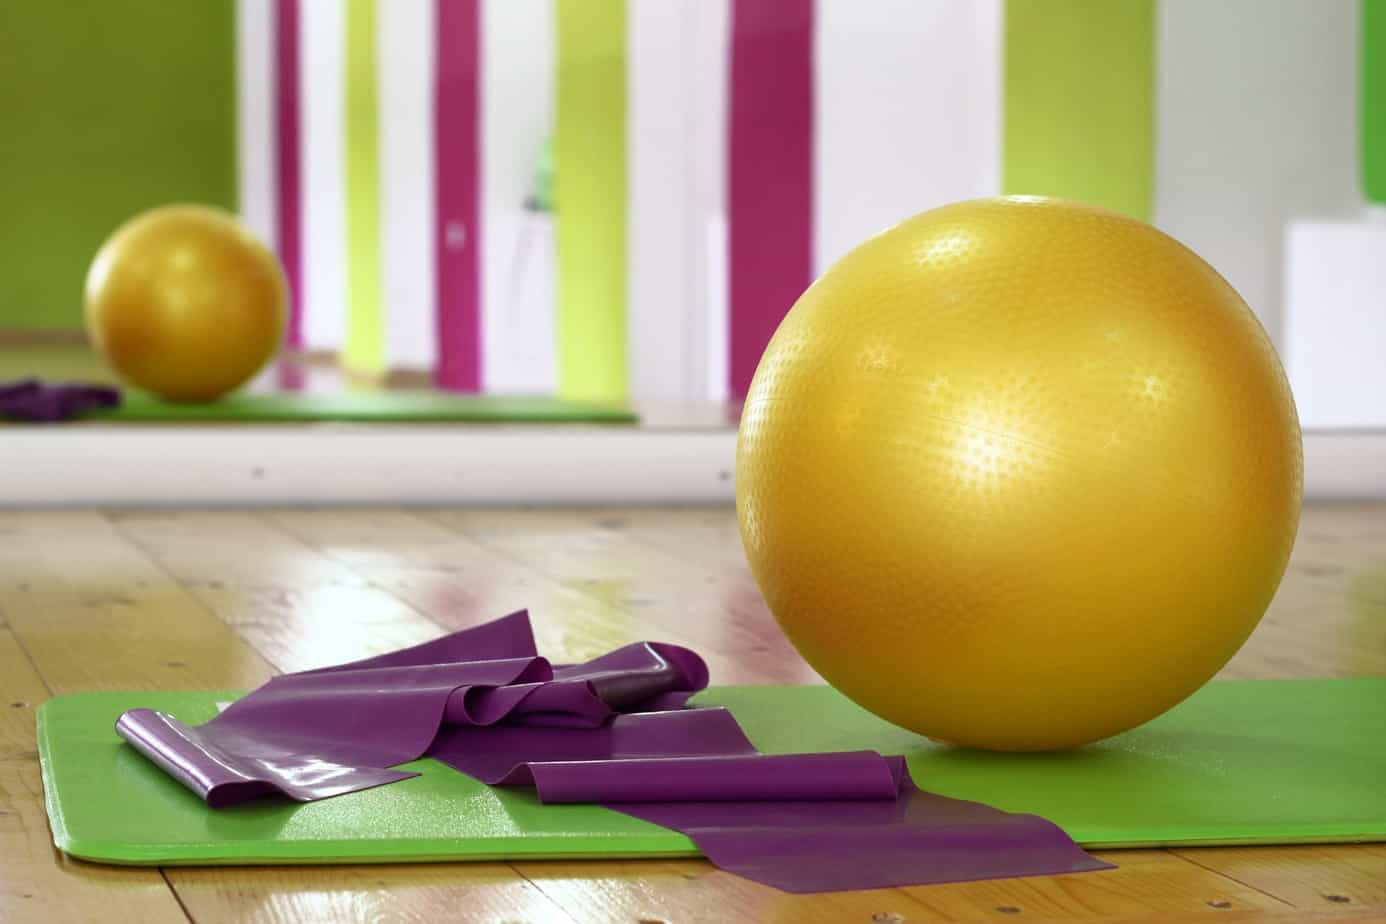 resistance training using resistance bands